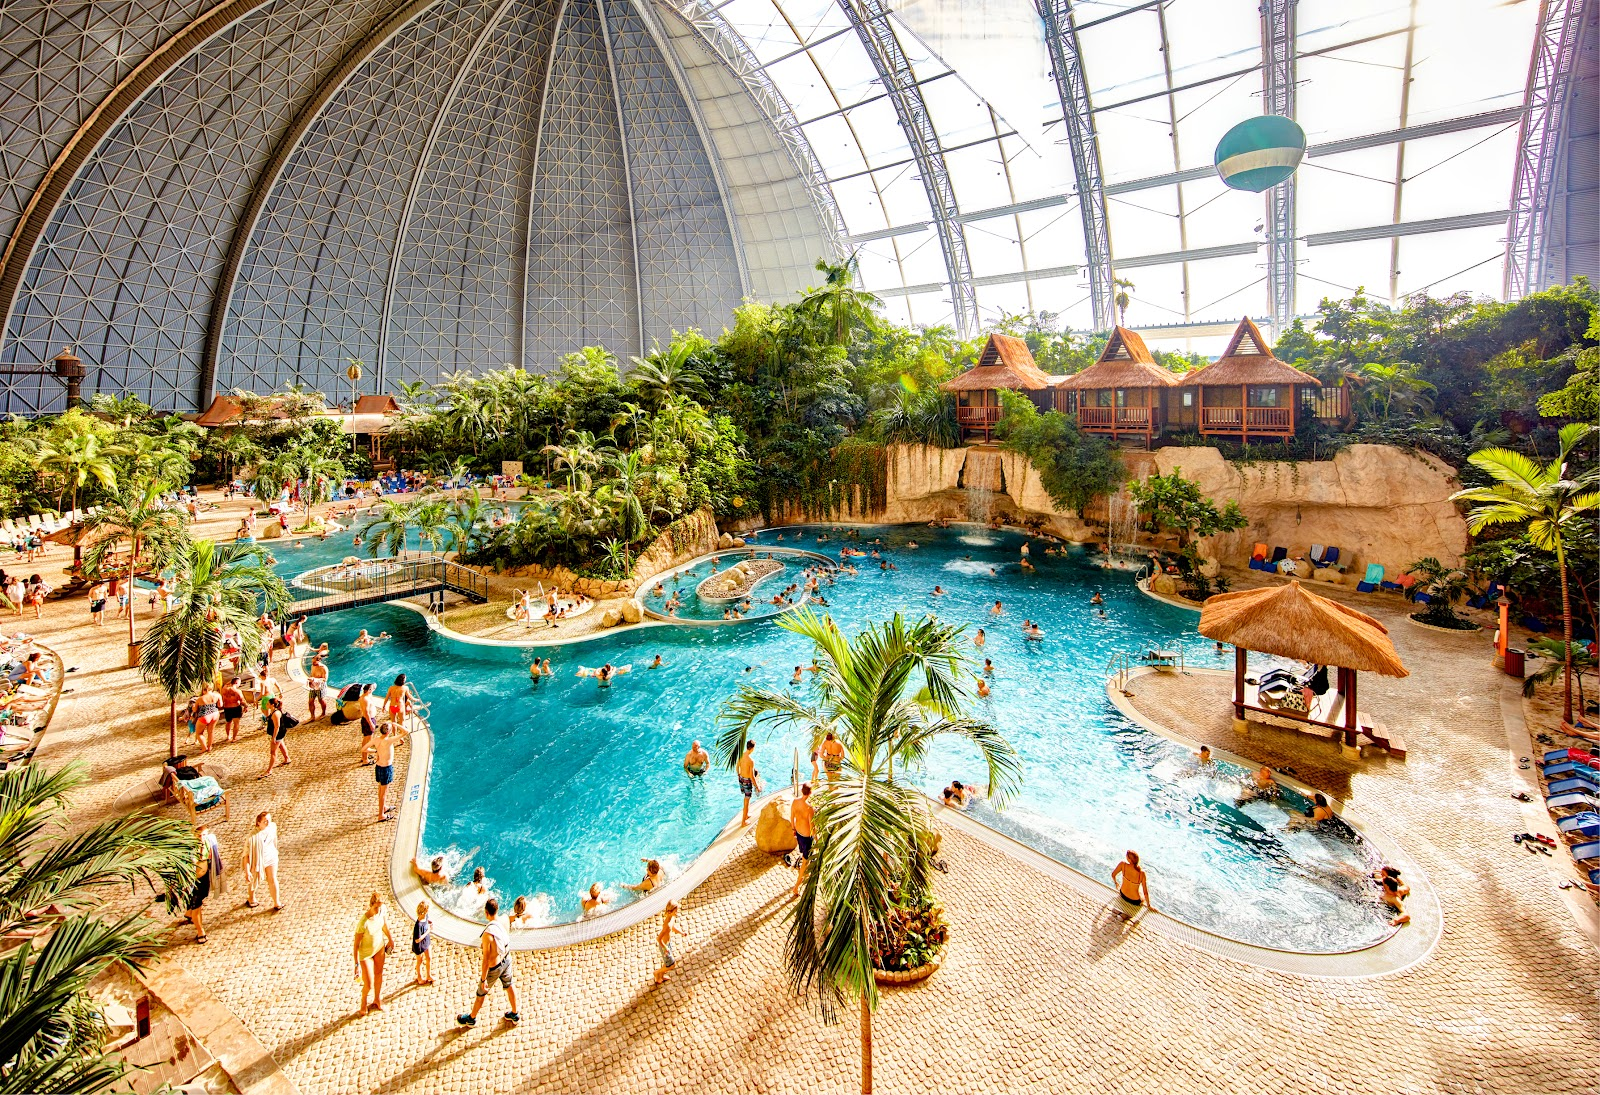 Top 7 Water Parks In The World - From Purple Parking